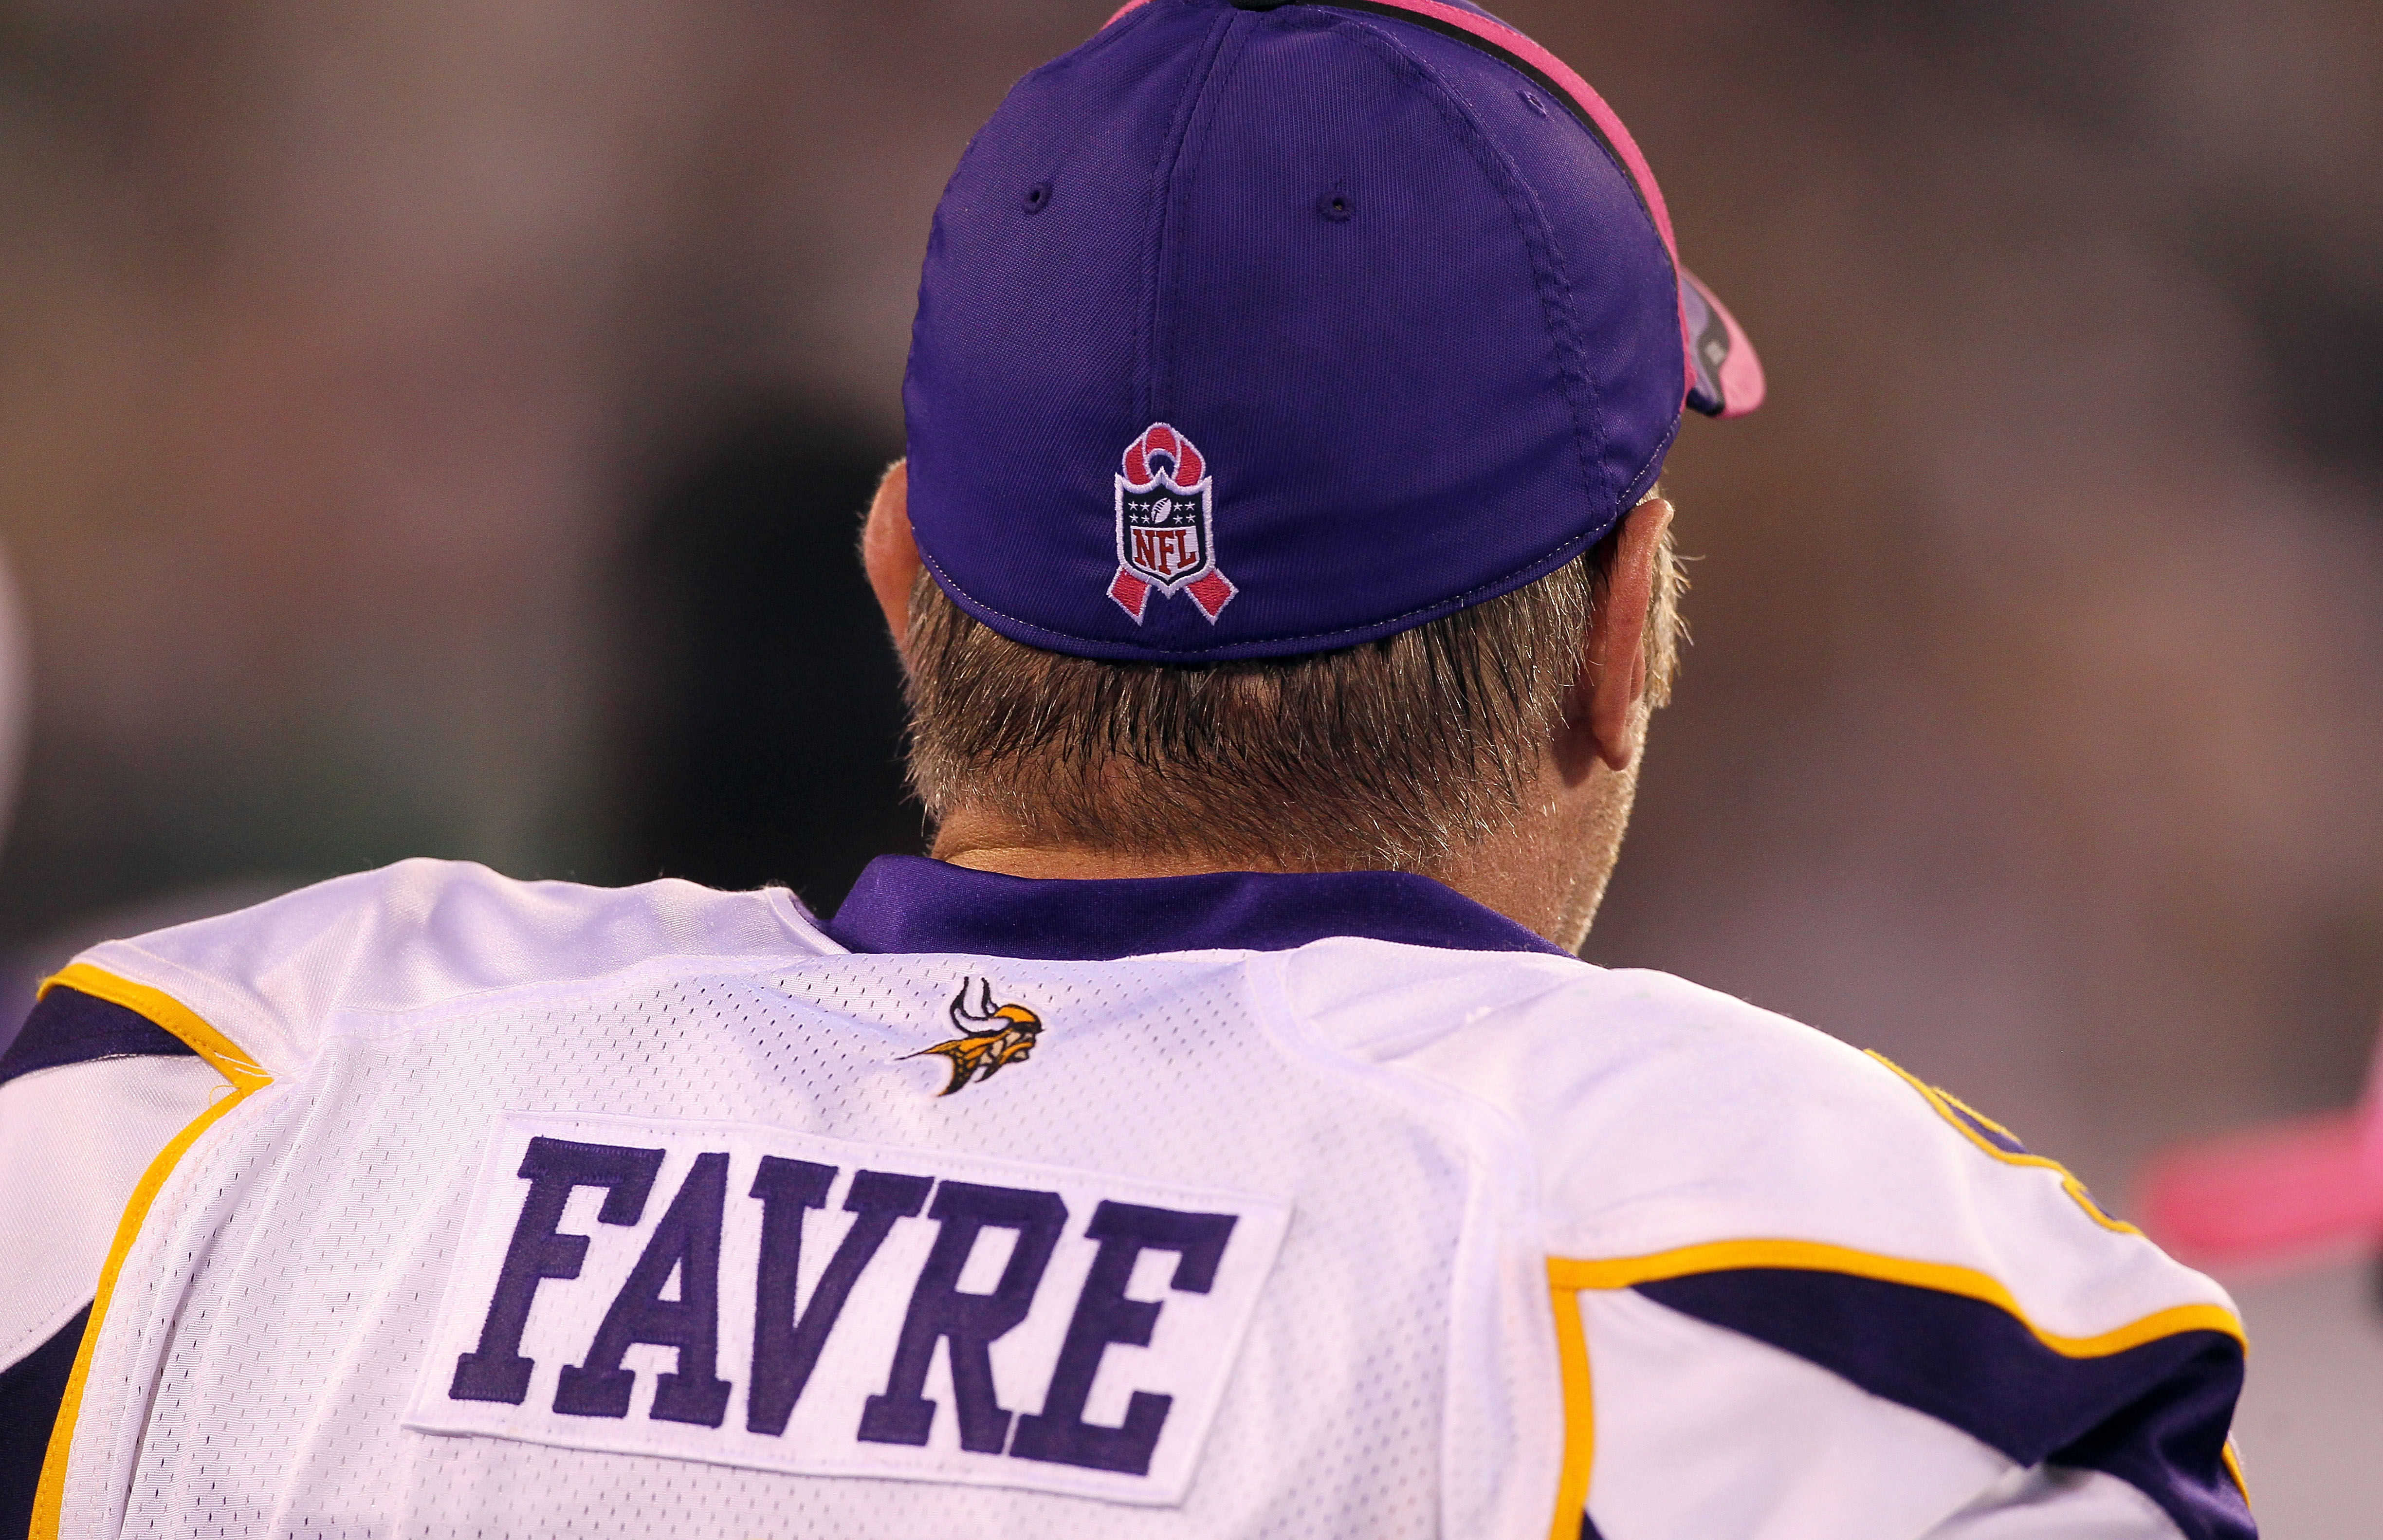 EAST RUTHERFORD, NJ - OCTOBER 11:  A detail of a Breast Cancer awareness ribbon is seen on the hat worn by Brett Favre #4 of the Minnesota Vikings against the New York Jets at New Meadowlands Stadium on October 11, 2010 in East Rutherford, New Jersey.  (P